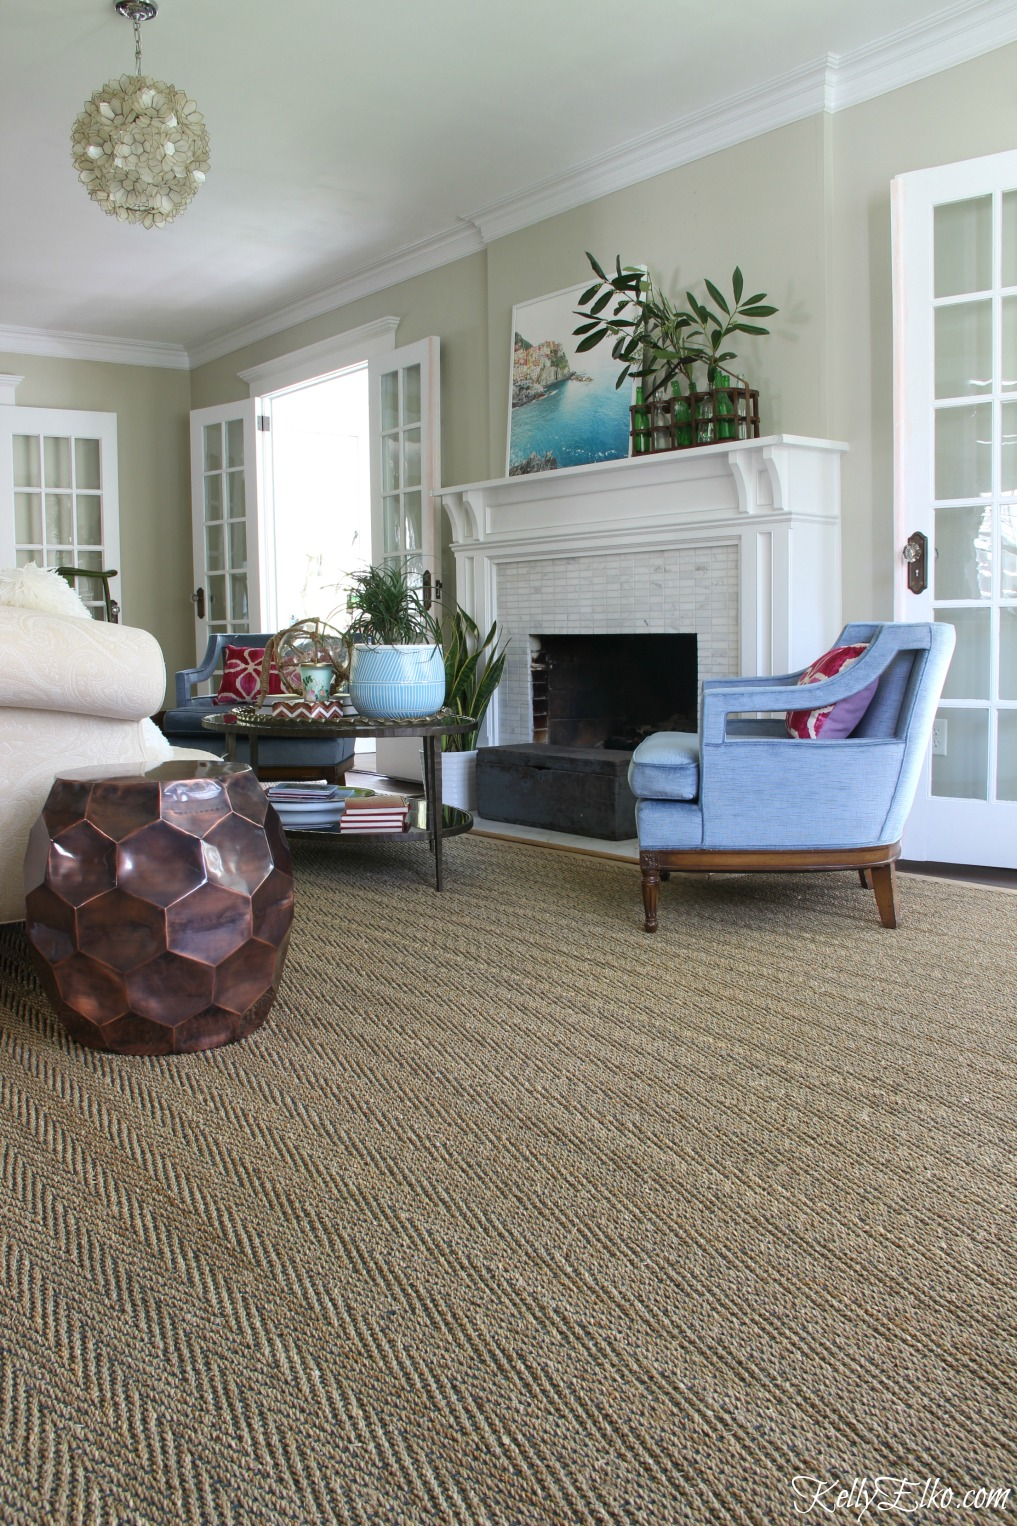 deluxe colors living perfect livings room hardwood textured brown or cozy berber tiles color carpet ideas